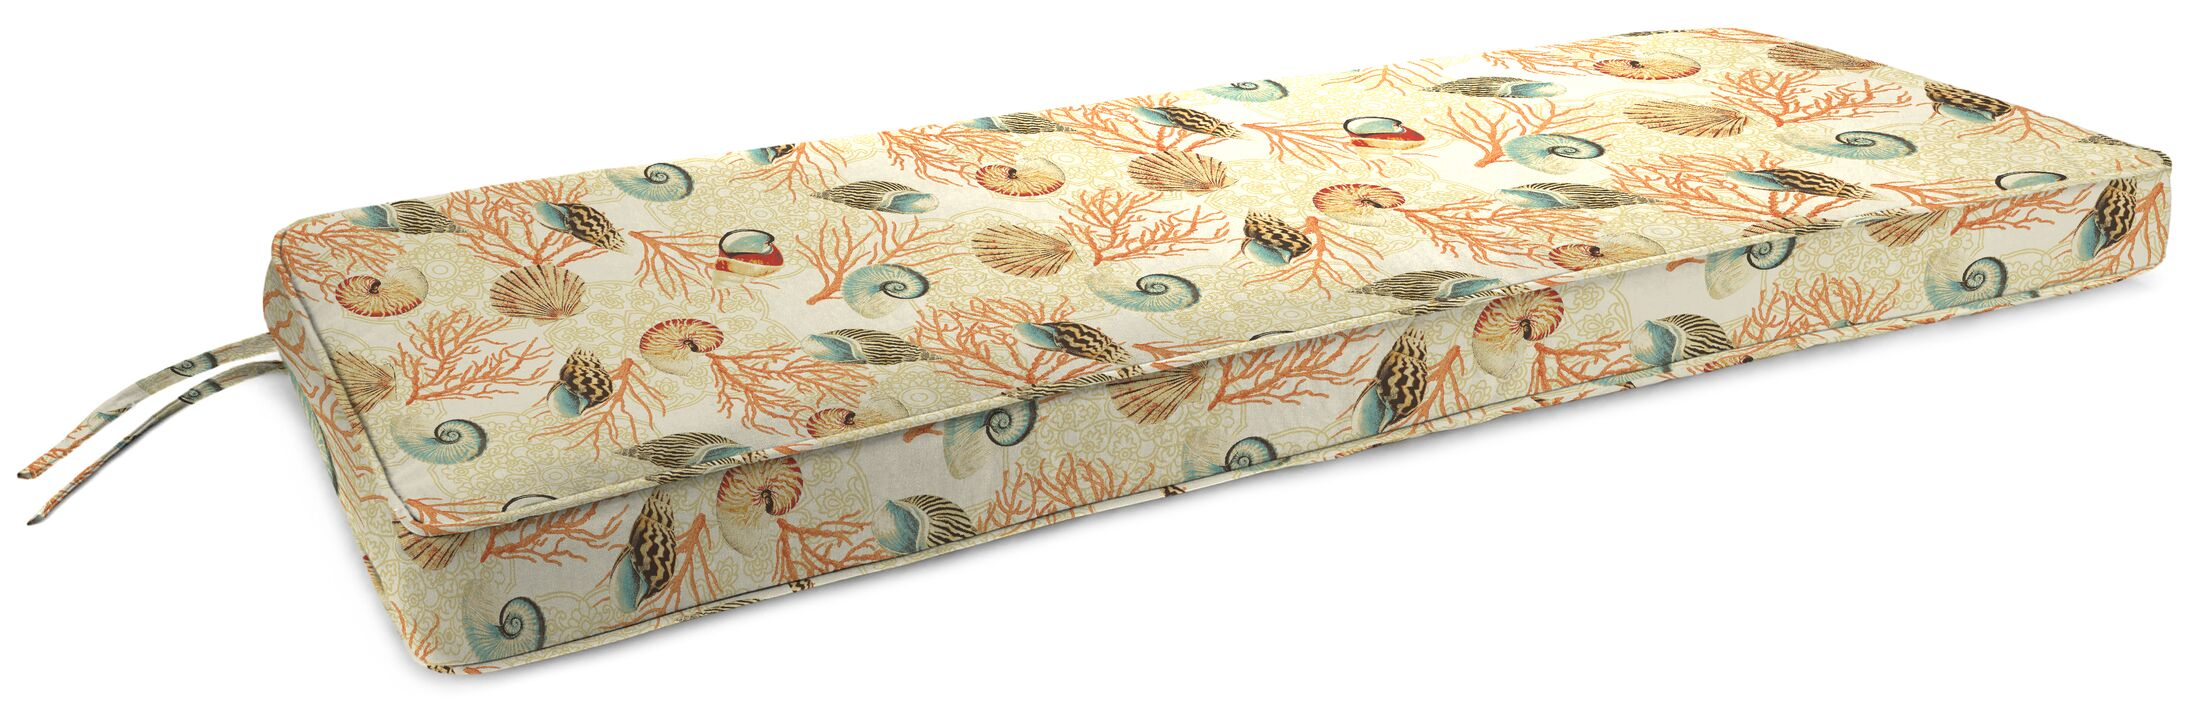 Indoor Bench Cushion Fabric: Shall We Dance Sandcastle